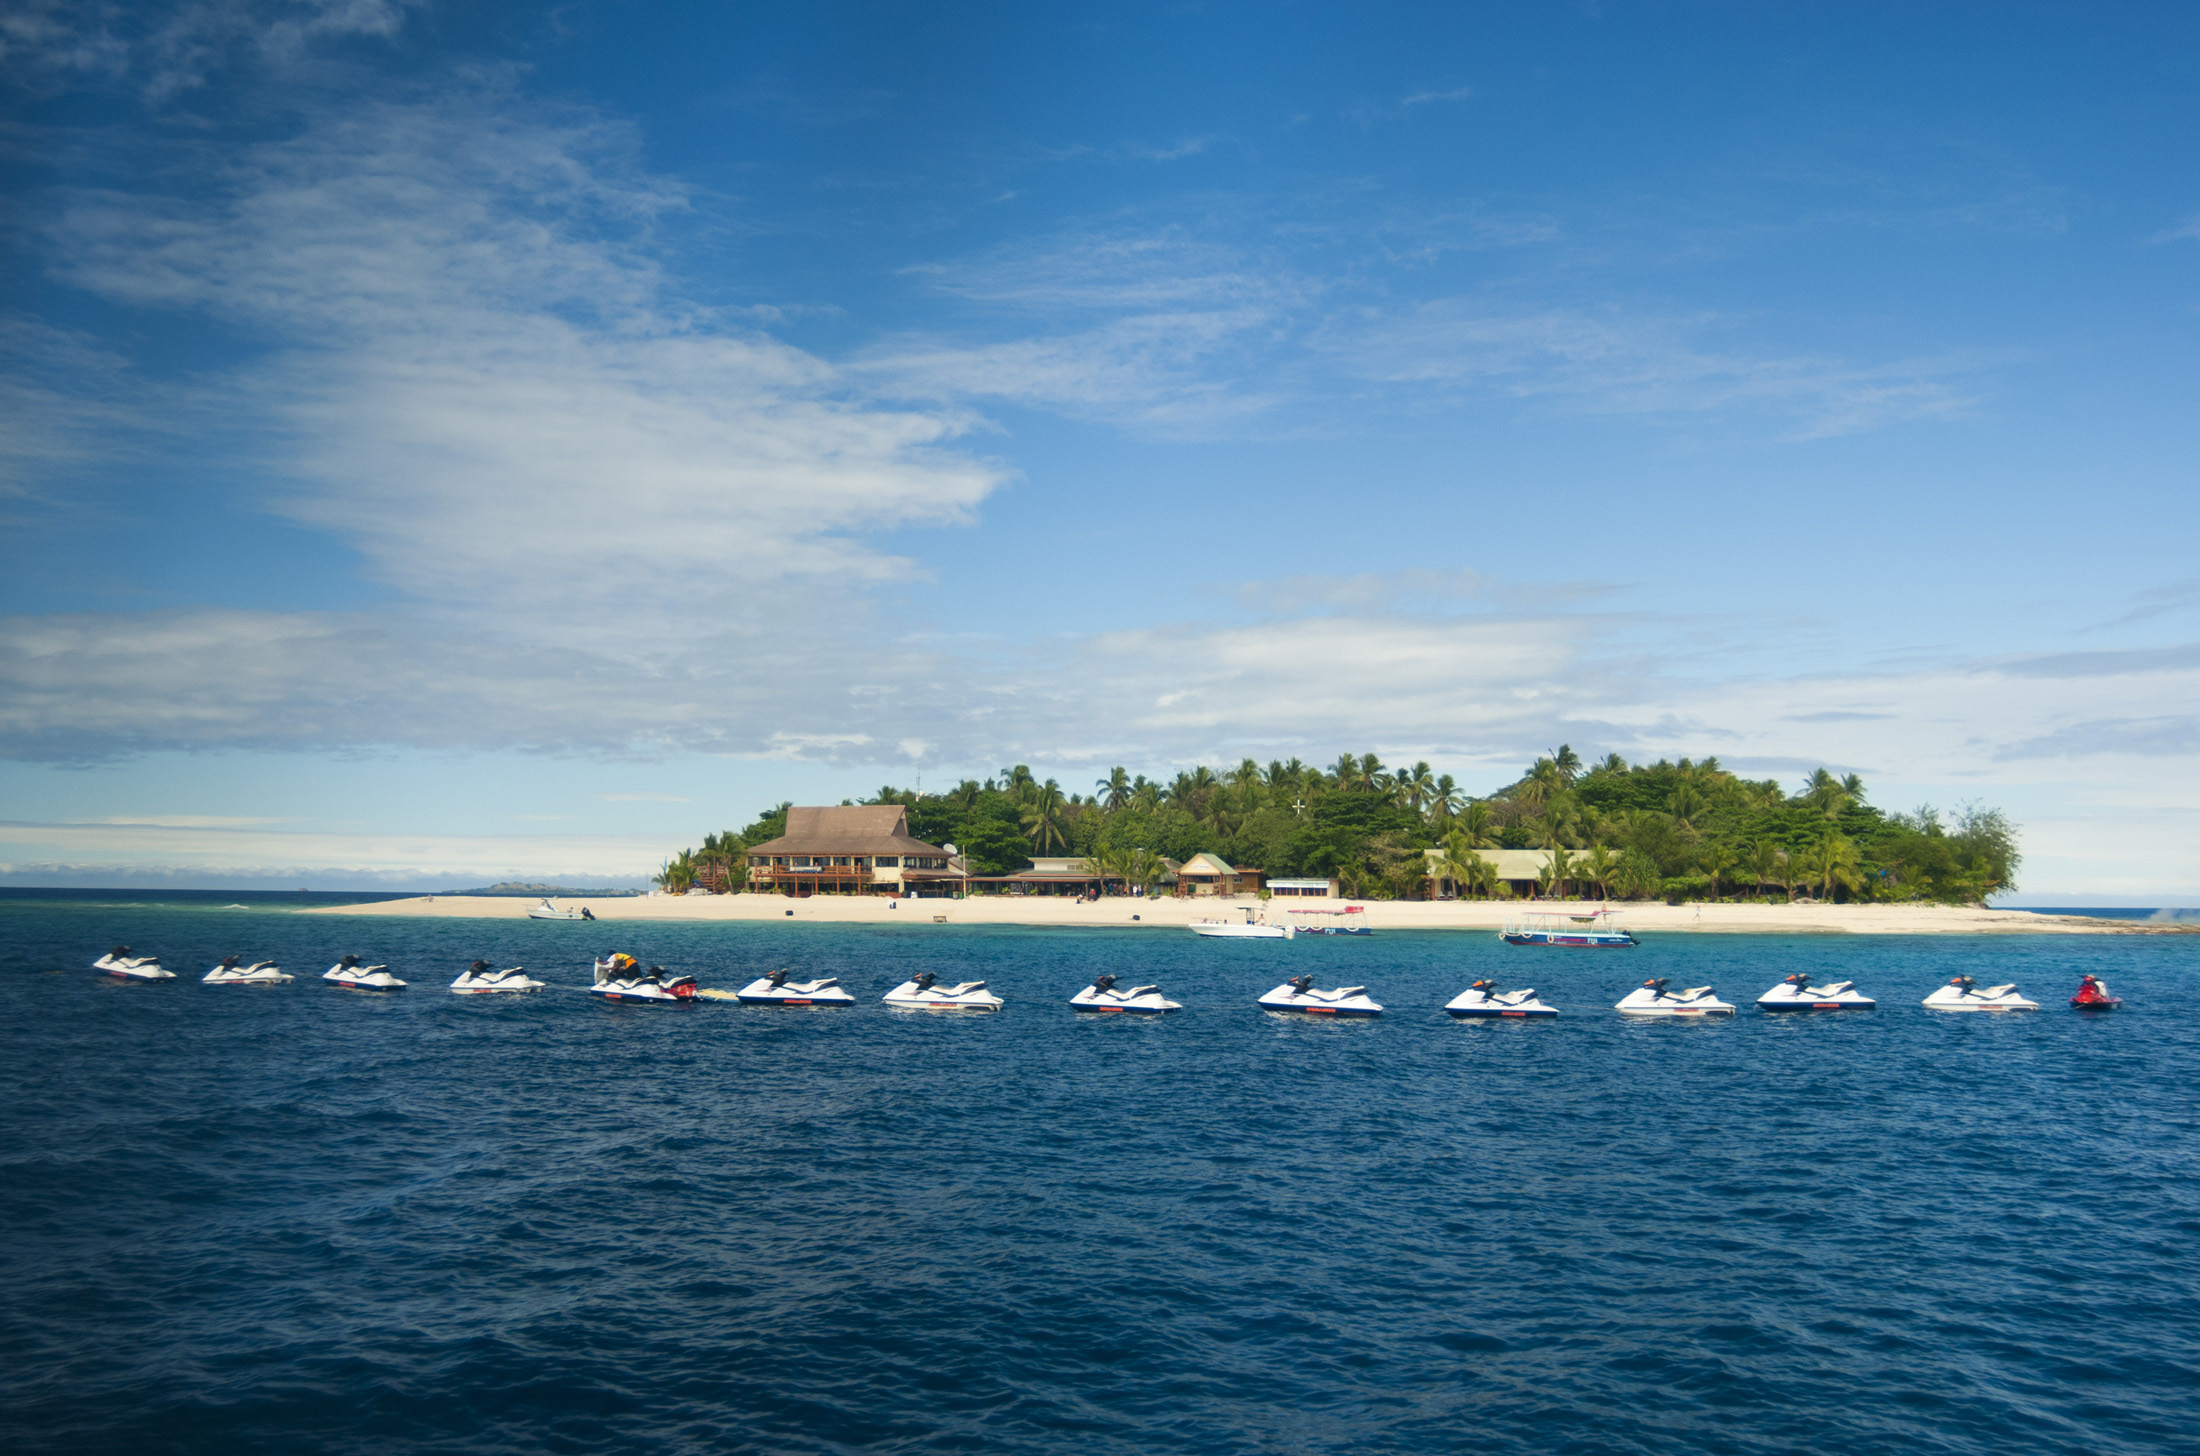 View across ocean of a line of jet skis moored in front of Beachcomber Island, Fiji with its small resort